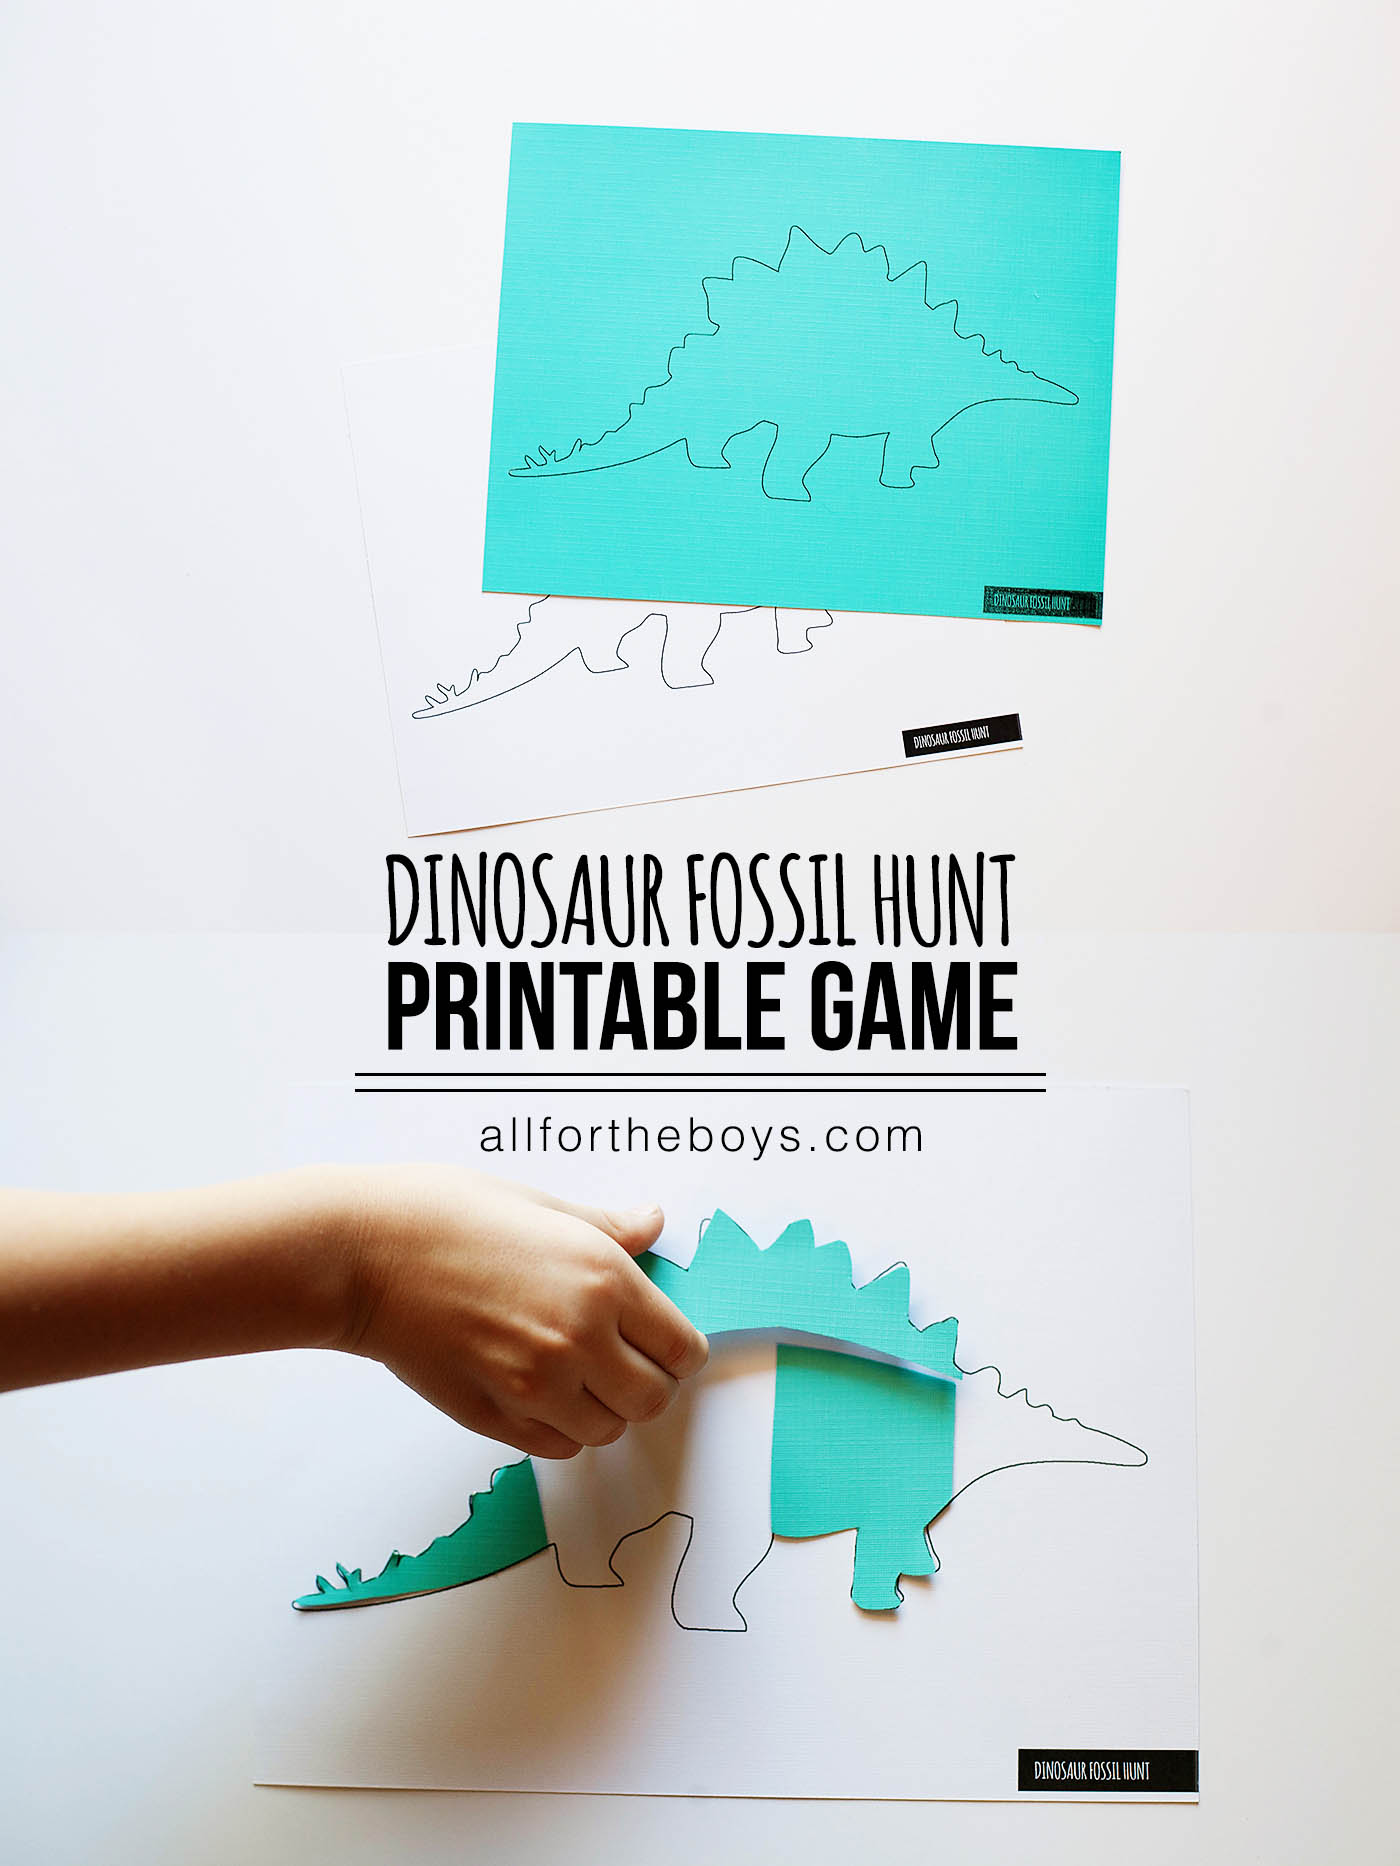 Dinosaur fossil hunt printable game - comes with 5 dinosaurs!